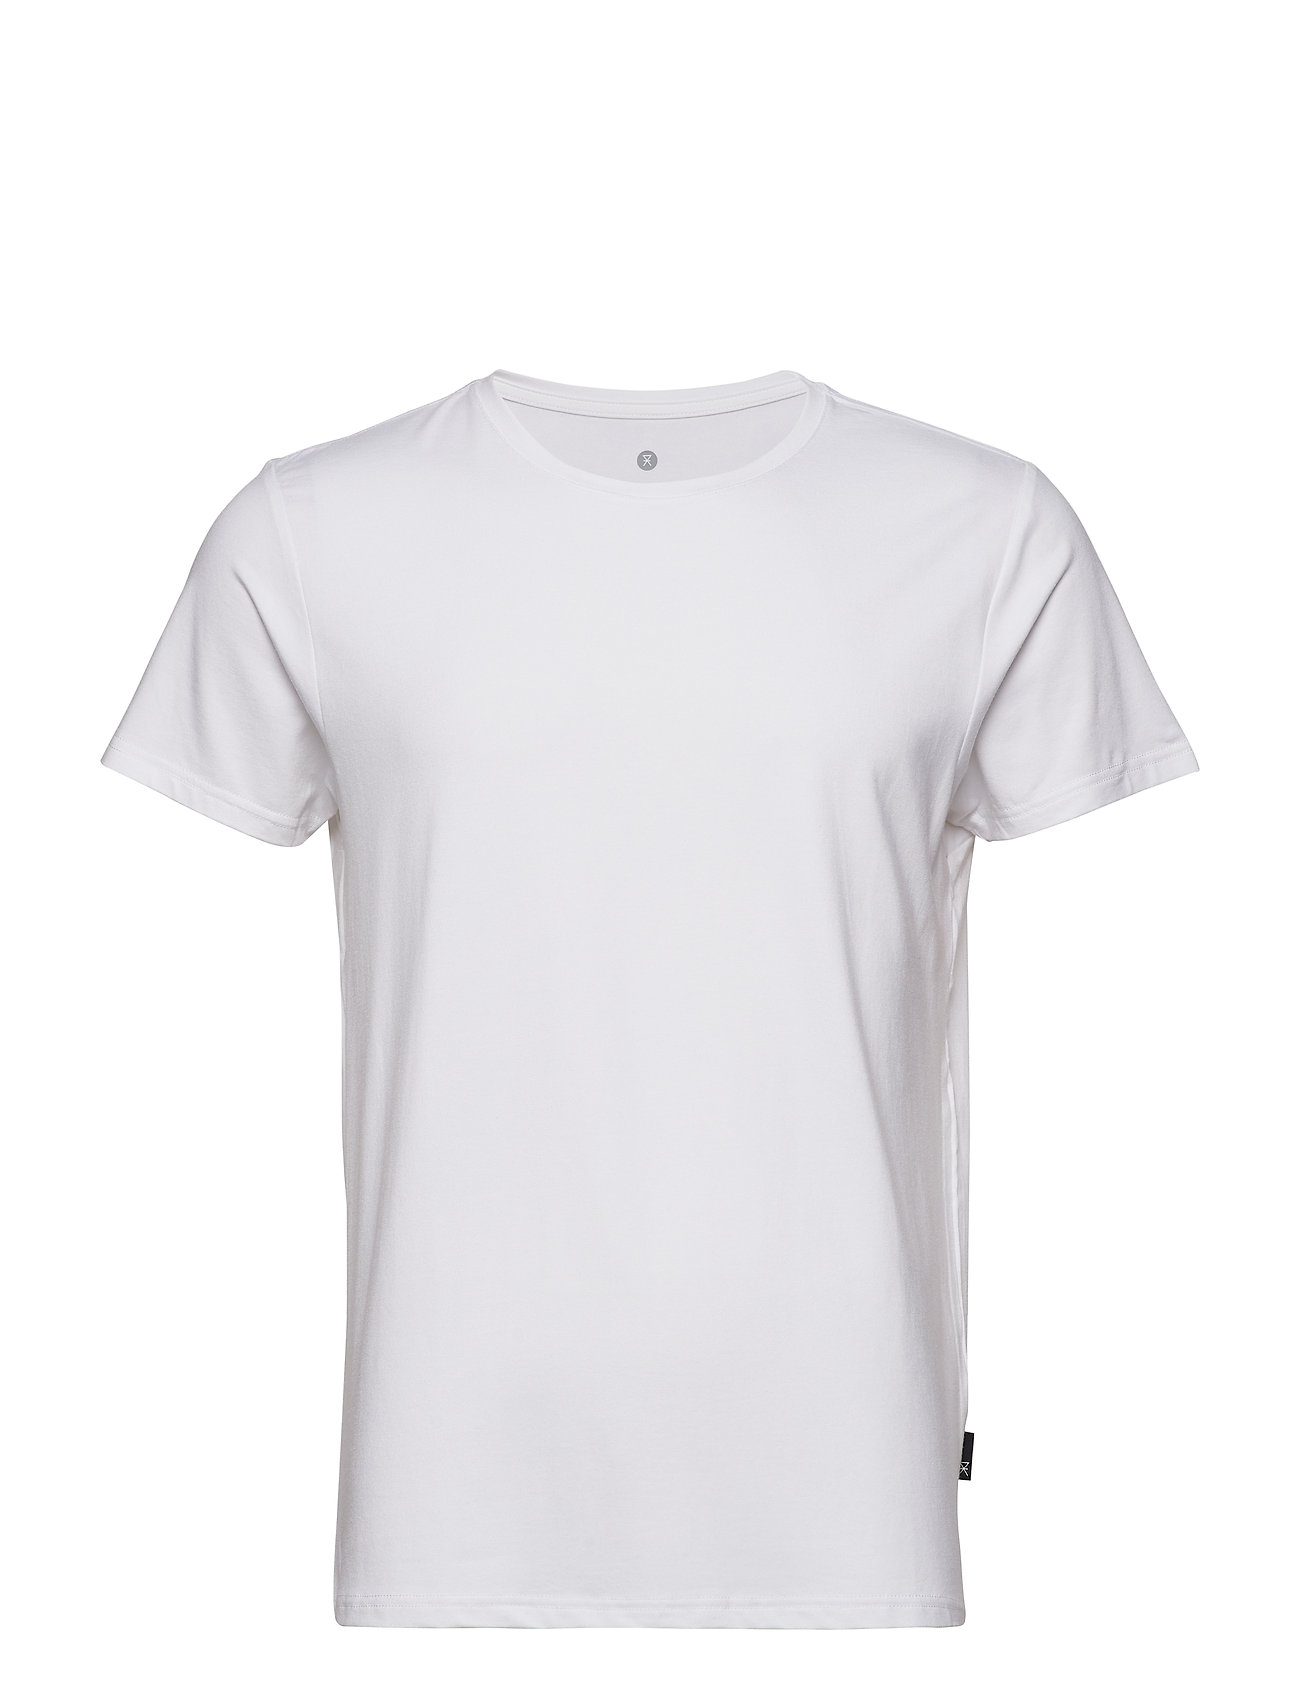 JBS of Denmark JBS of Denmark, O-neck t-shirt - WHITE